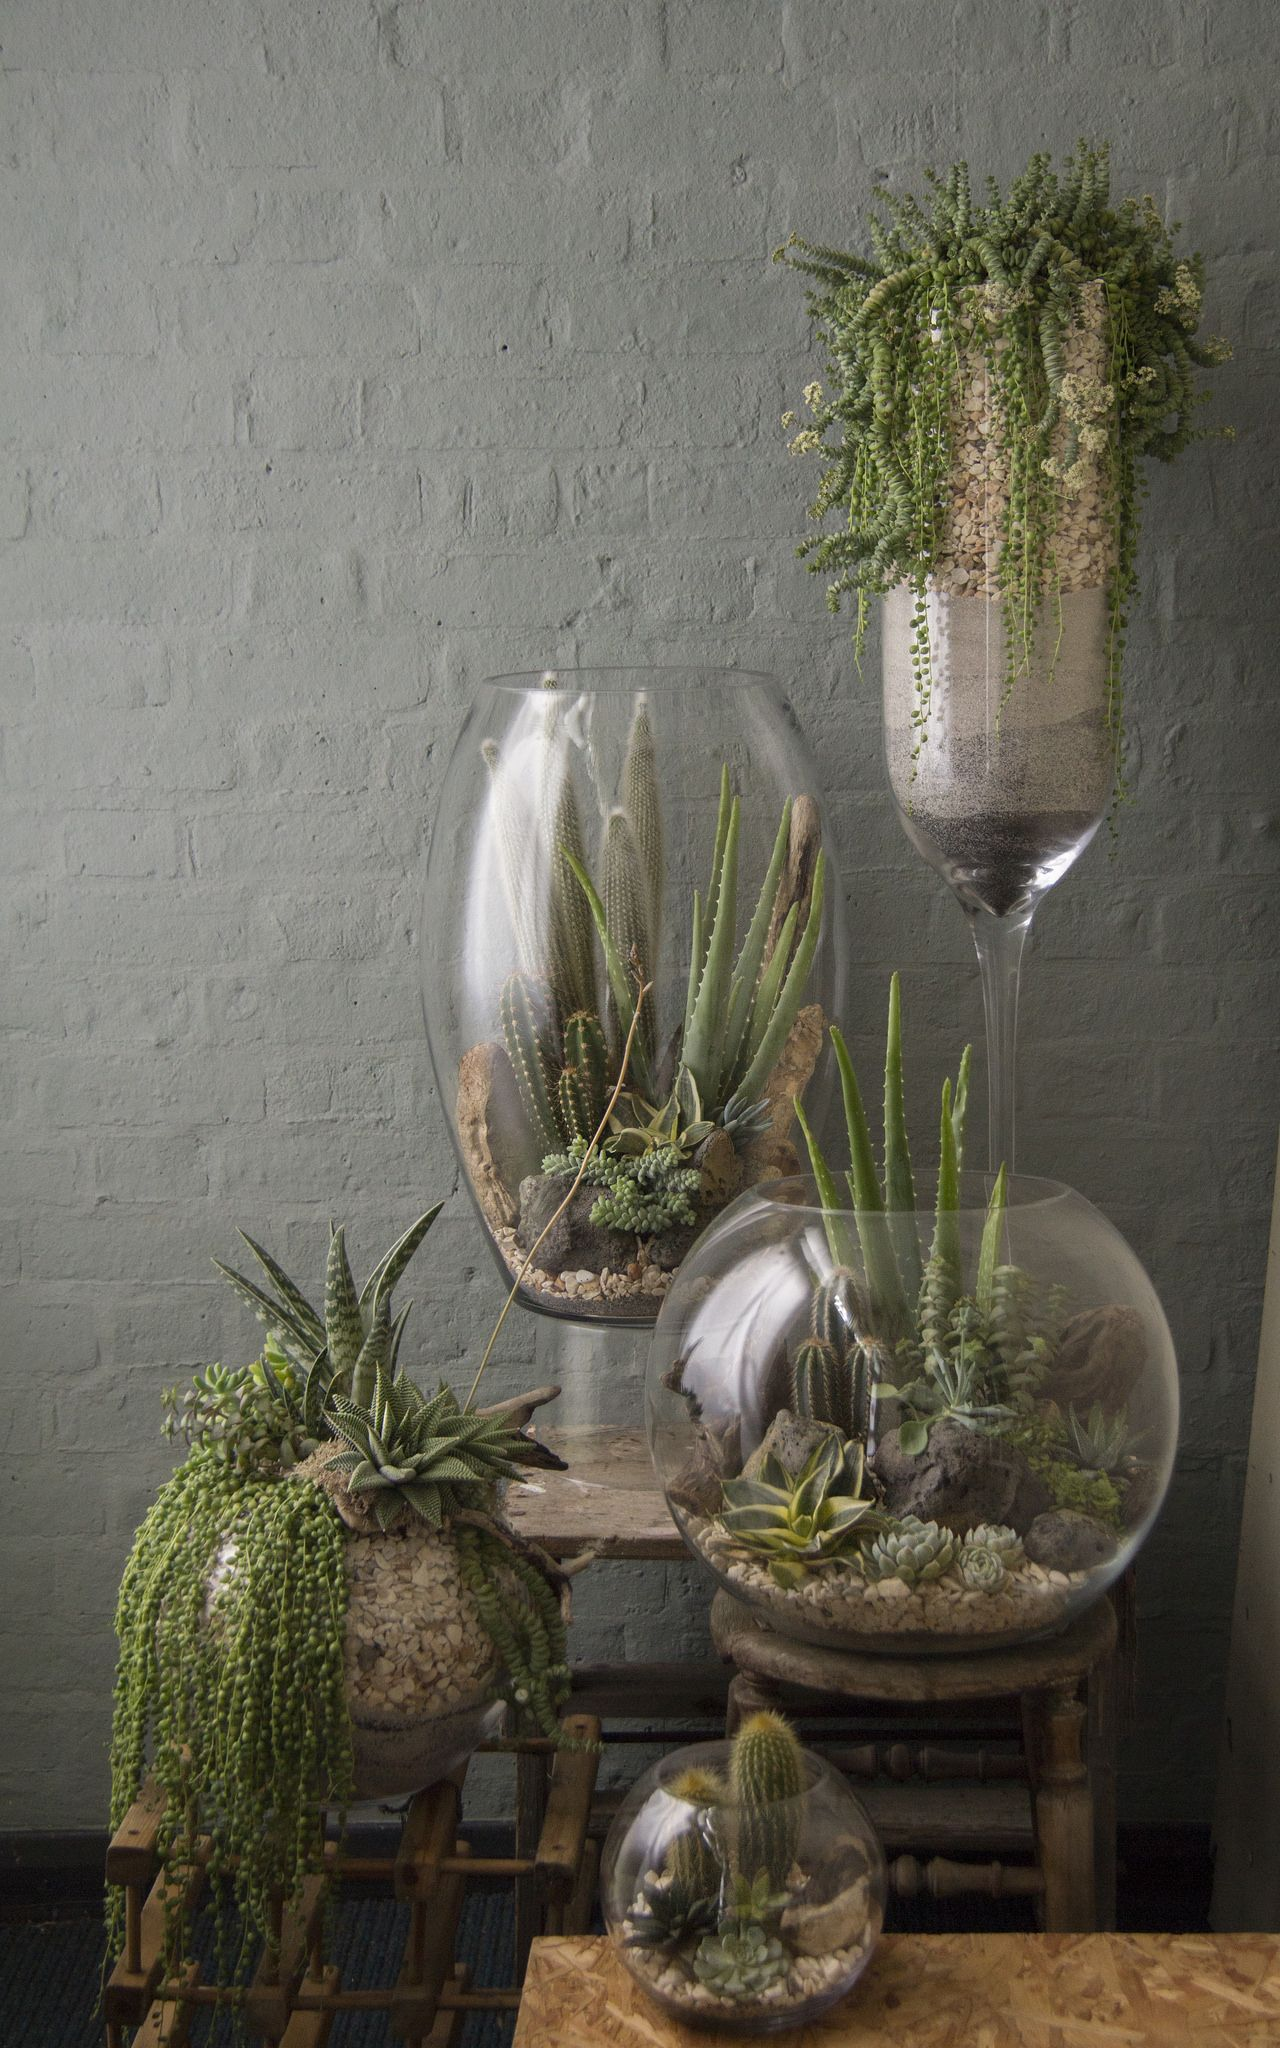 Potager D'hiver Interieur Get Inspired 10 Stunning Indoor Garden Ideas To Brighten Your Home